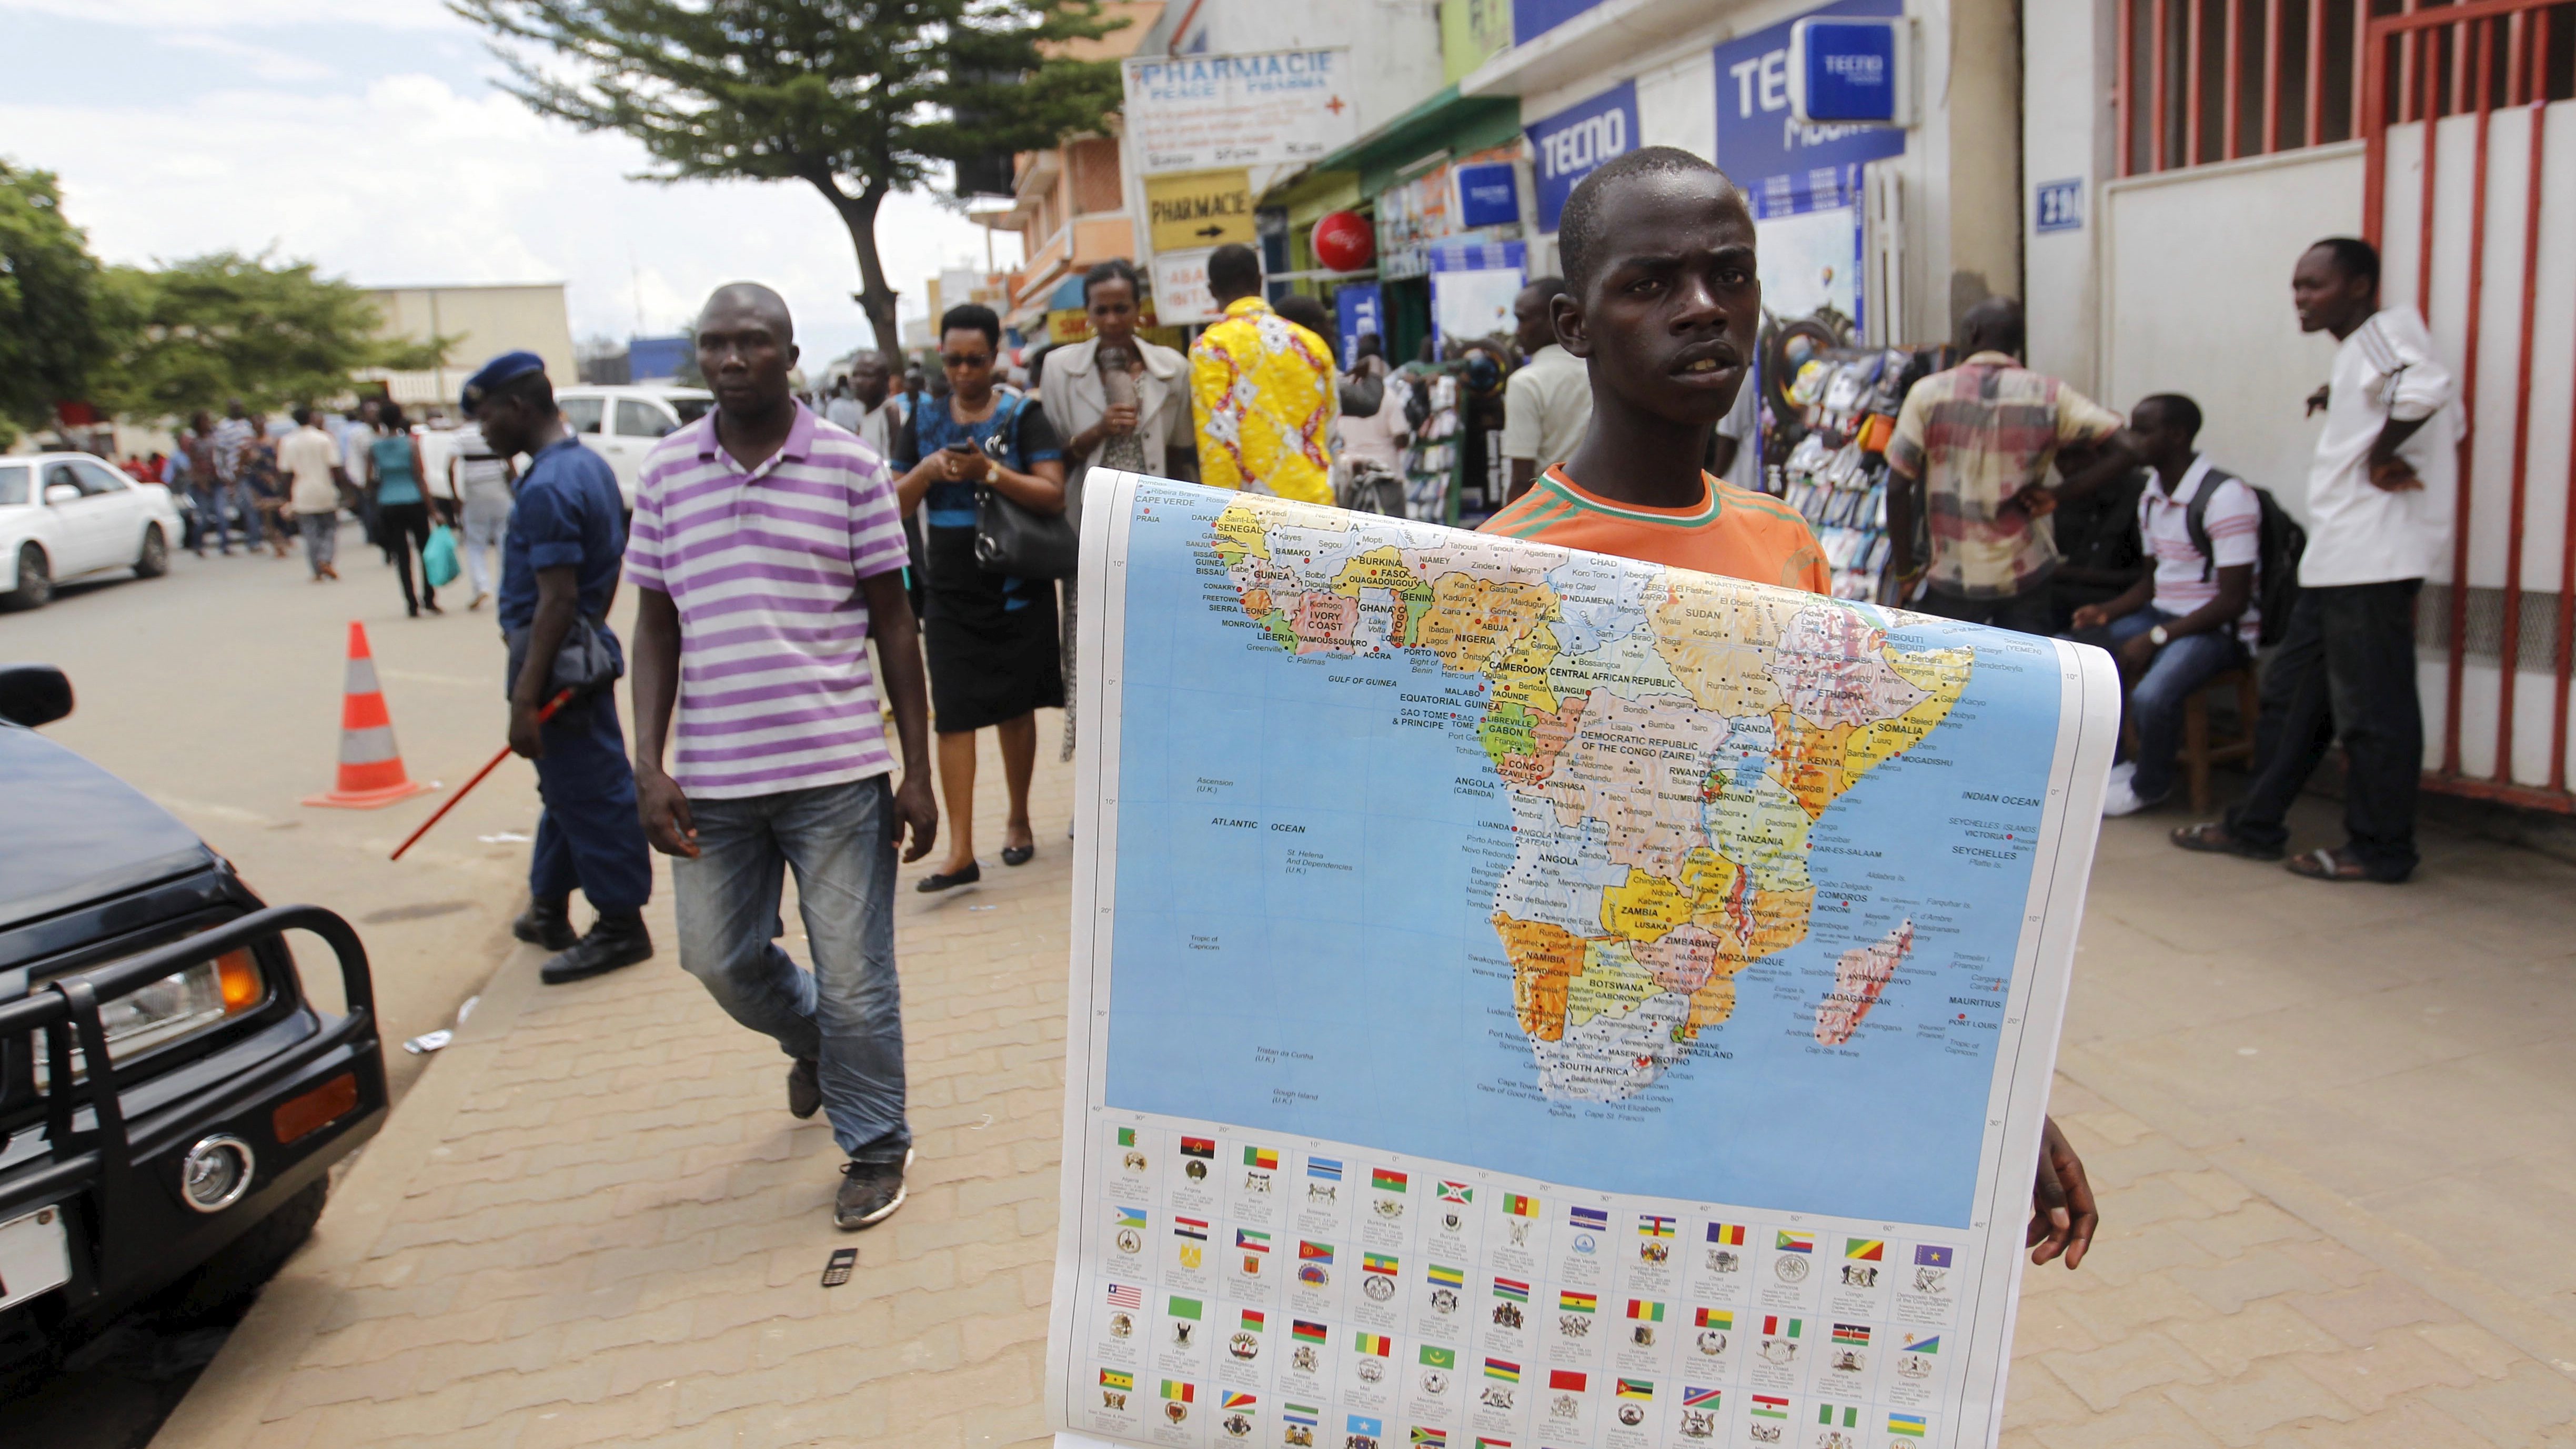 """A vendor sells a map of Africa along the streets of Bujumbura, Burundi April 24, 2015. While recent unrest has plunged the small, landlocked nation of Burundi into its worst crisis since the end of a conflict a decade ago, Reuters photographer Thomas Mukoya shows the realities of daily life. Amid rising tensions in a region with a history of ethnic conflict, crowds of cheering, singing people streamed onto the streets of Bujumbura, the capital of Burundi, on a day that may amount to a coup prompted by a bid by President Pierre Nkurunziza to seek a third term in office. REUTERS/Thomas Mukoya    PICTURE 6 OF 31 FOR WIDER IMAGE STORY """"BURUNDI - LIFE BEYOND THE PROTESTS"""" SEARCH """"MUKOYA BUJUMBURA"""" FOR ALL IMAGES - RTX1CSLJ"""